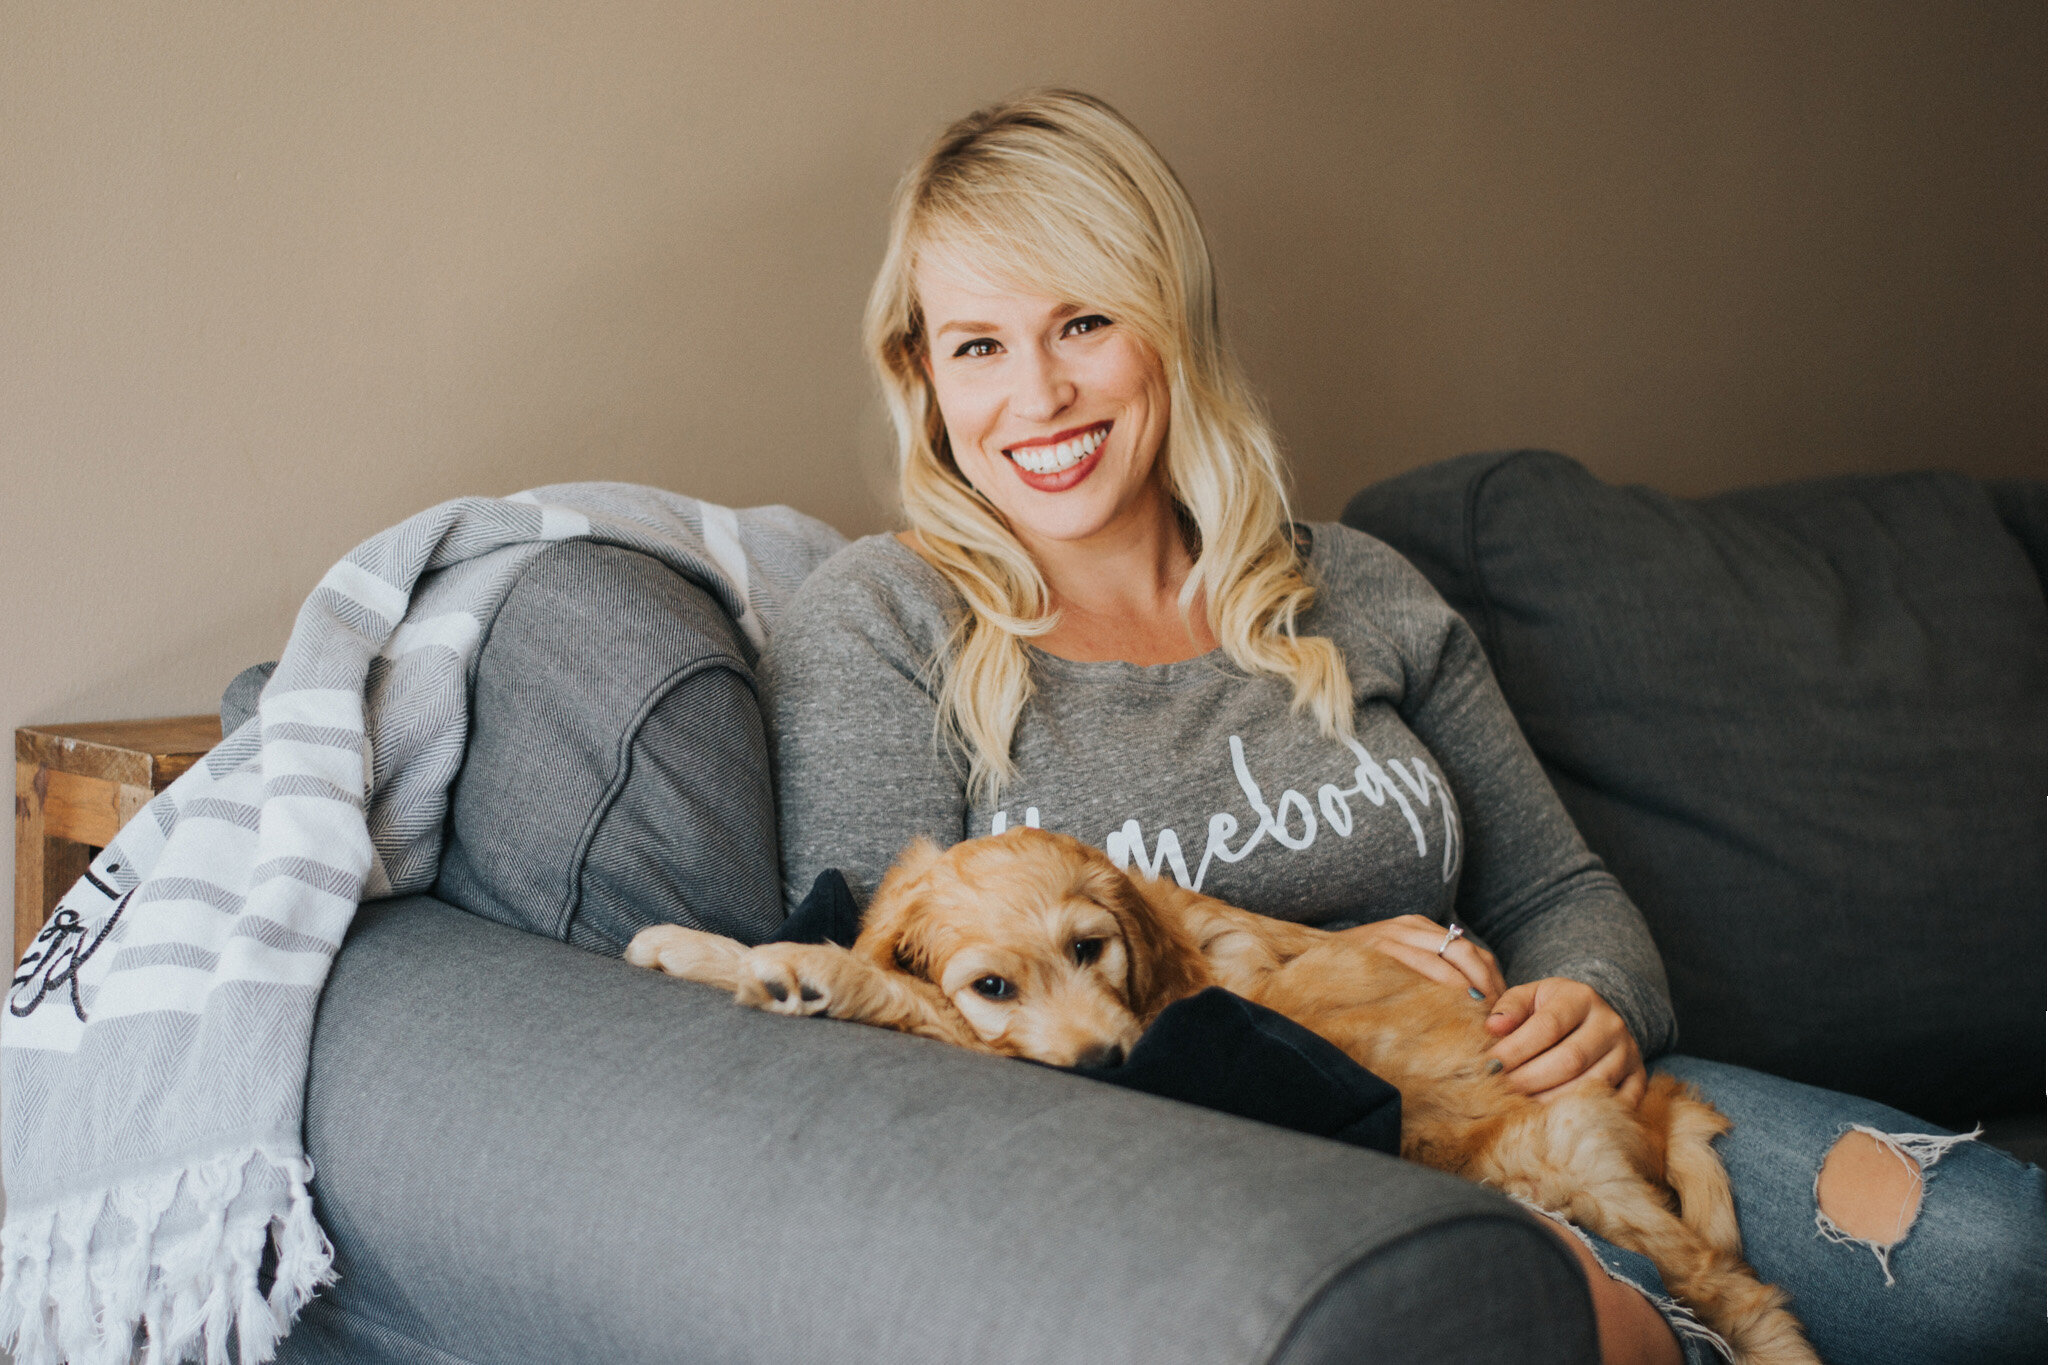 Beth is an Award Winning Graphic Designer and Small Business Supporter   When she isn't creating something beautiful, she is spending time with her two kids, her pup, and her boyfriend, or exploring somewhere new.